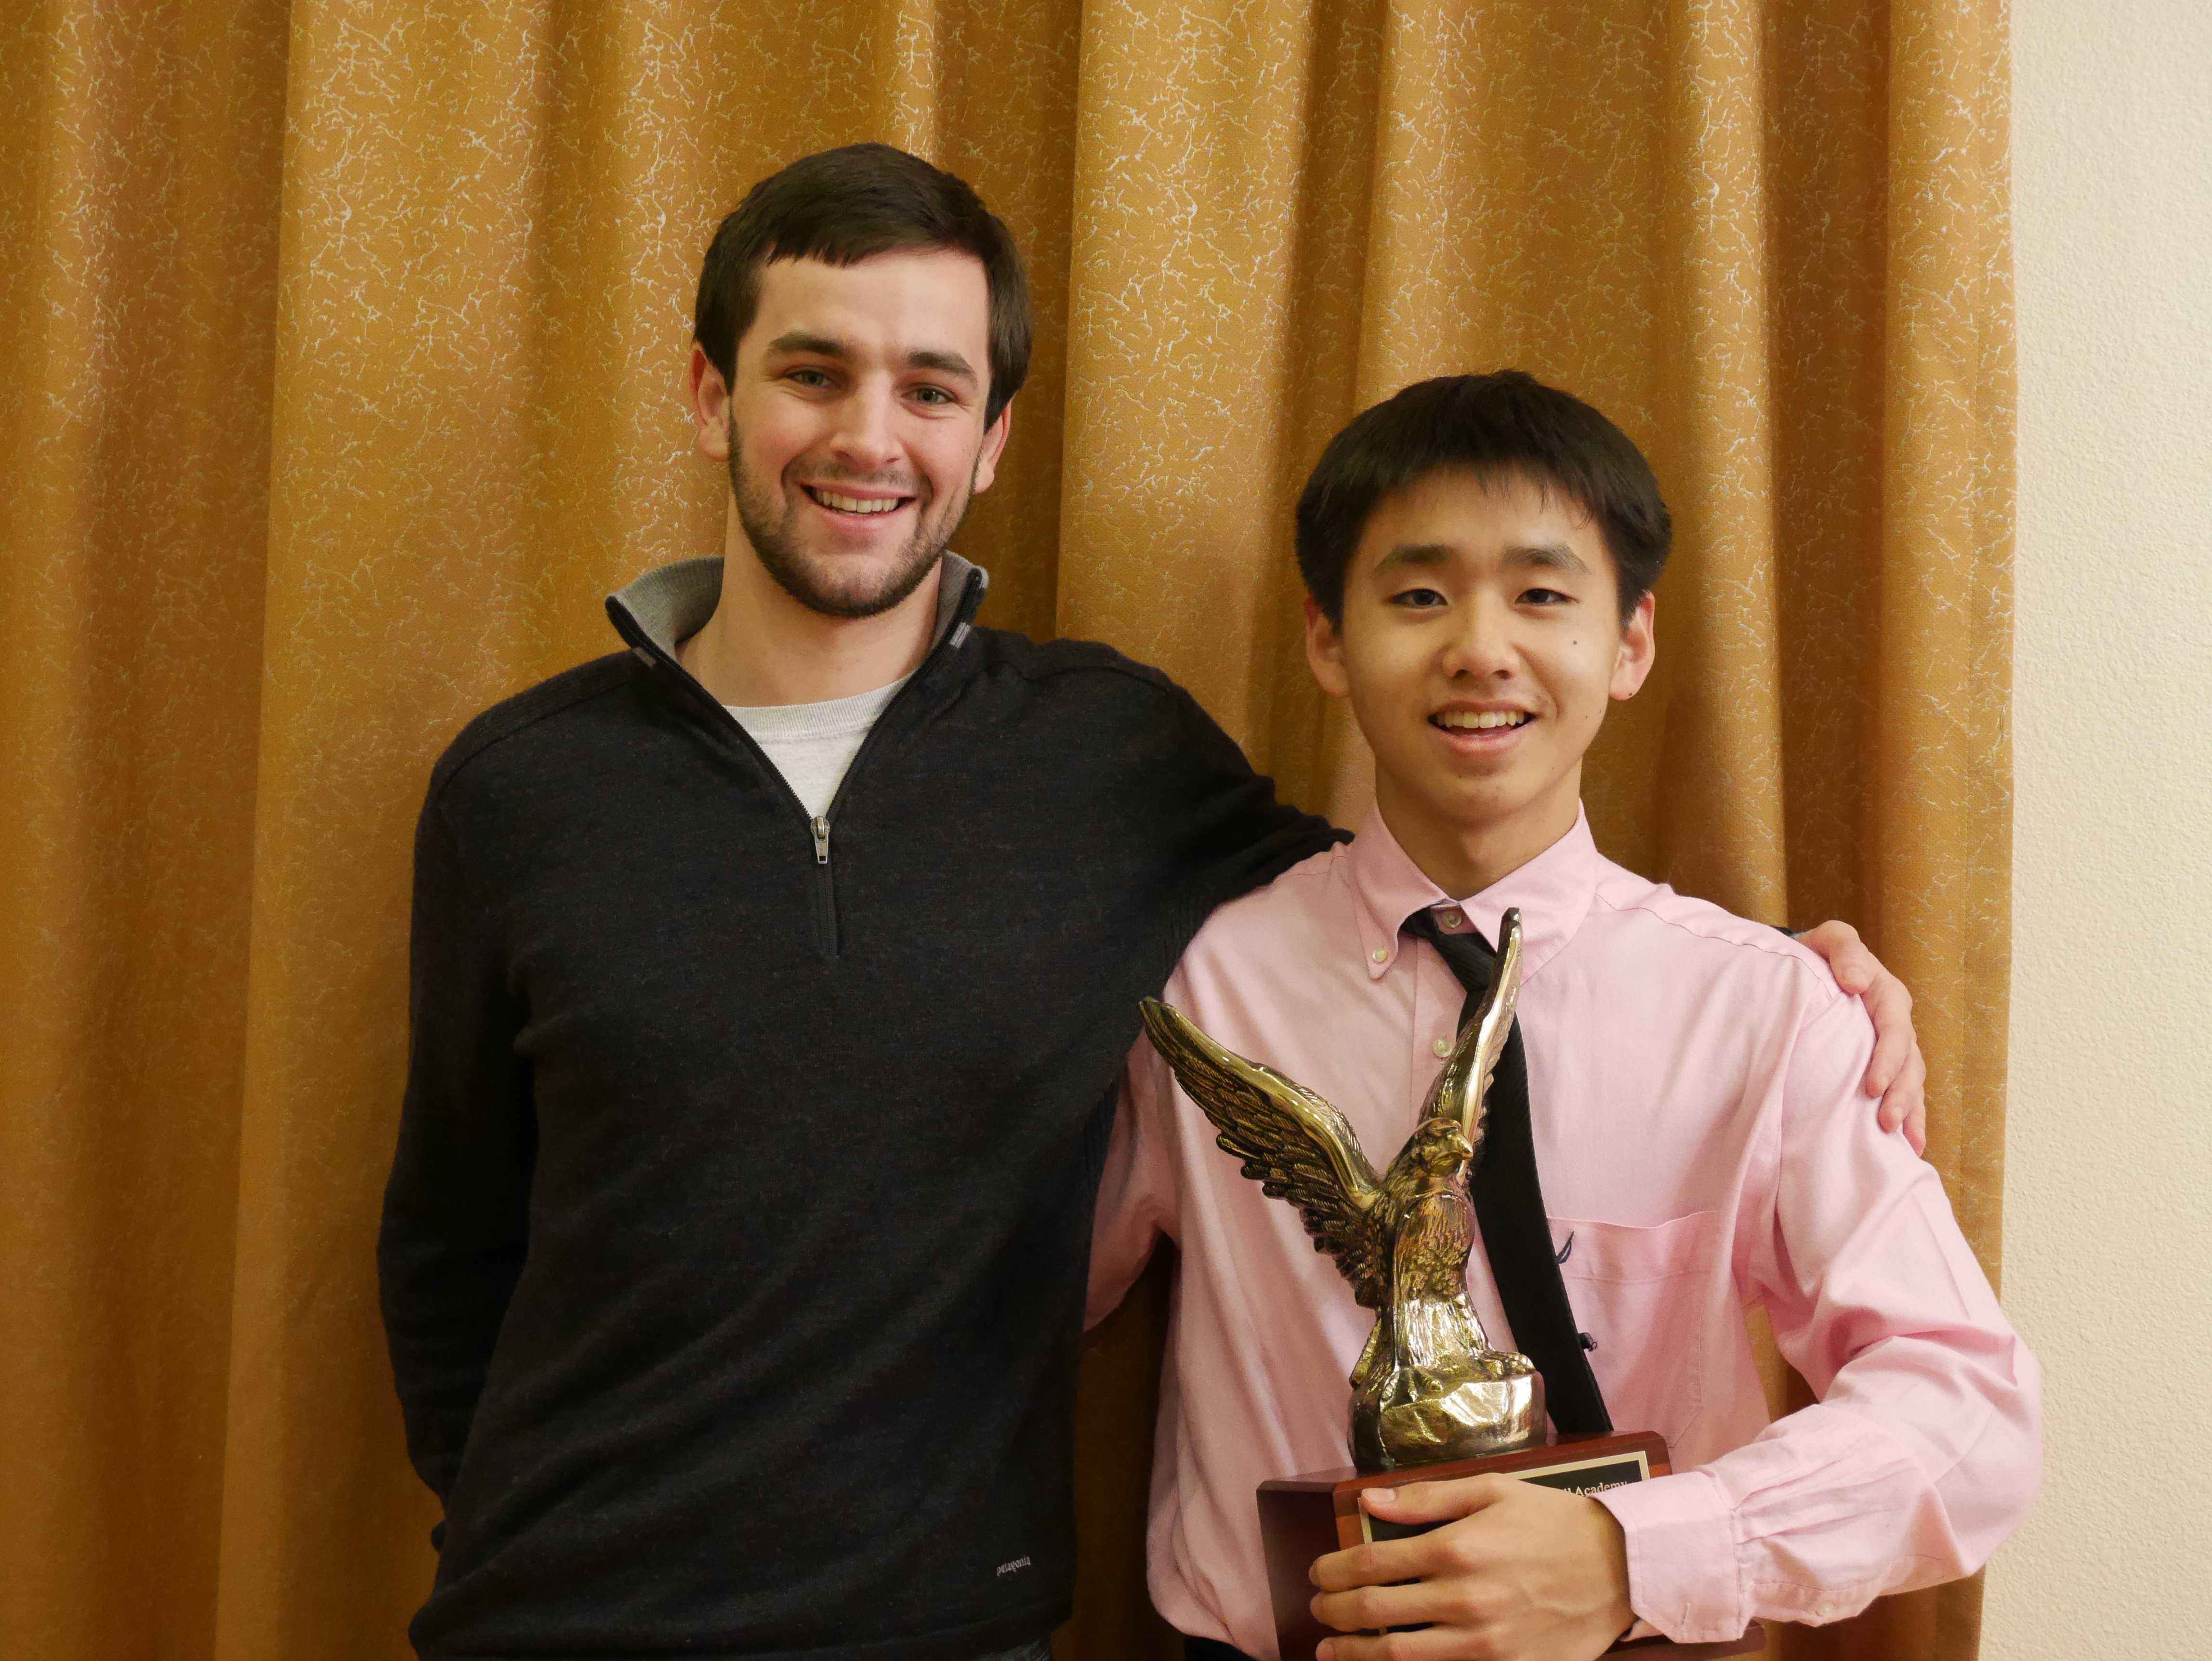 """Chen poses with coach and Paly alum Alex Carter after winning a tournament. """"""""The biggest thing with Travis is that he is very well-rounded as a debater,"""" says Carter.  """"He doesn't specialize in one type of argument over the other."""""""